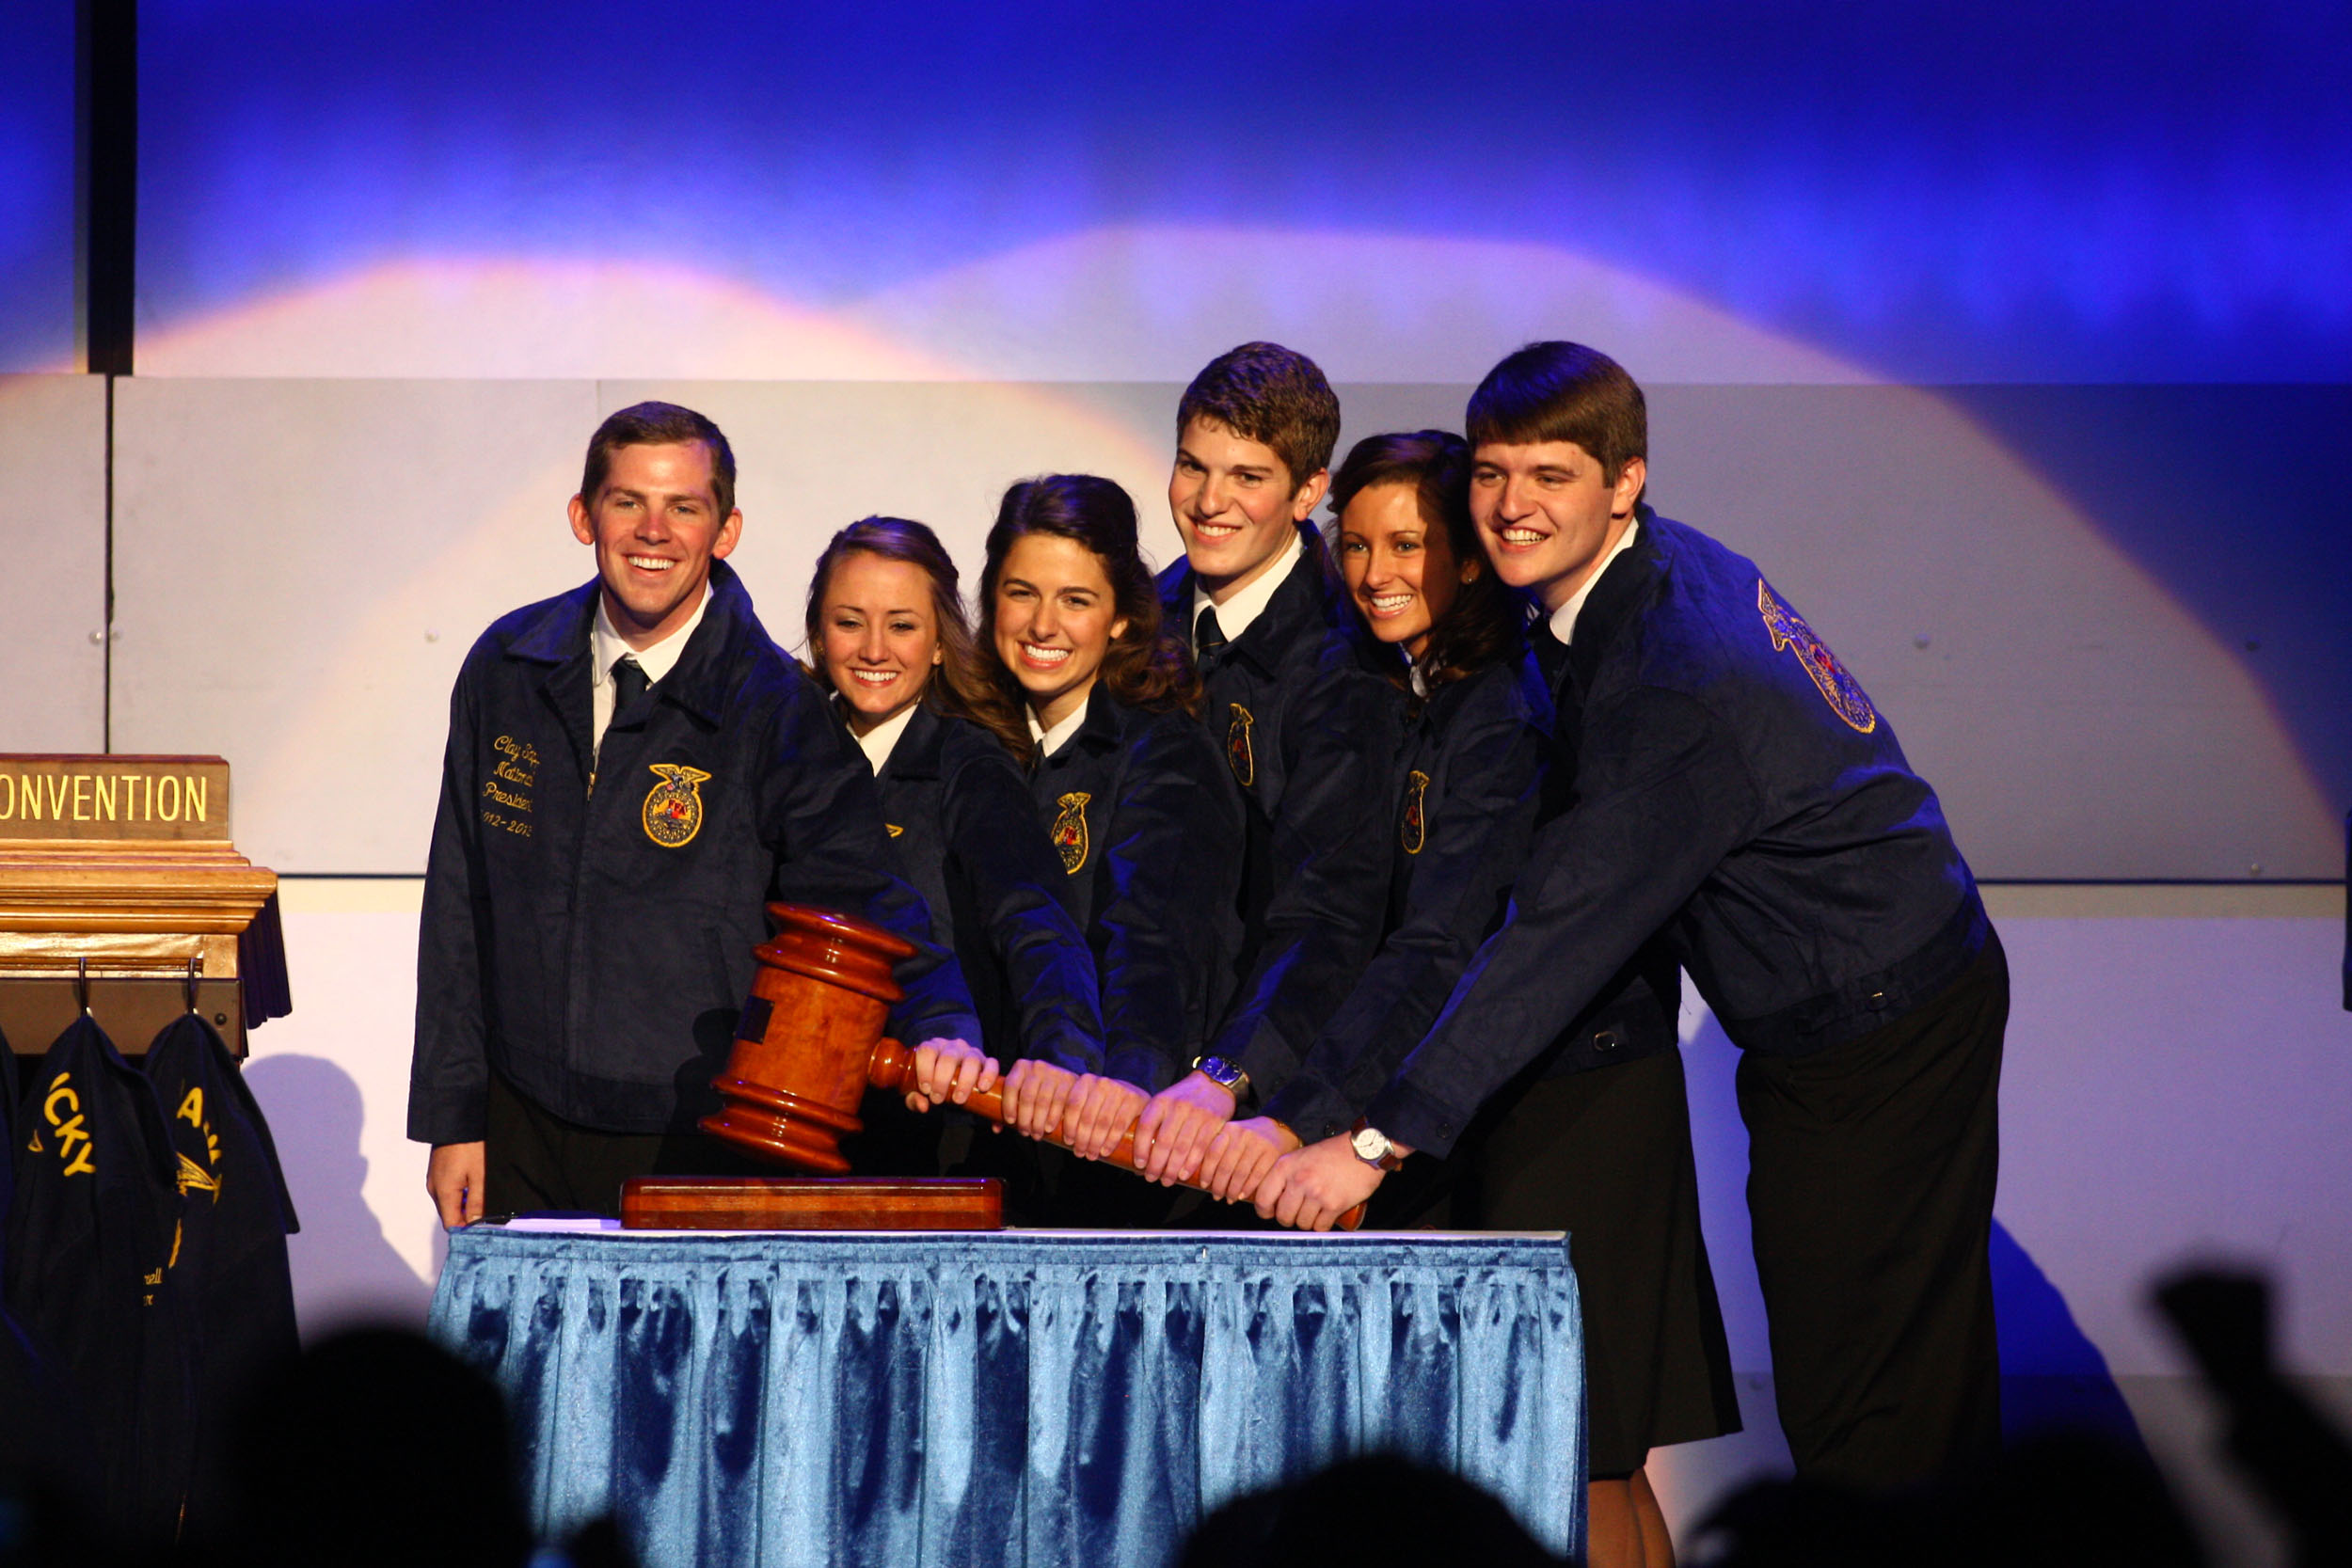 Former Florida FFA State President Named 2012-13 National FFA President